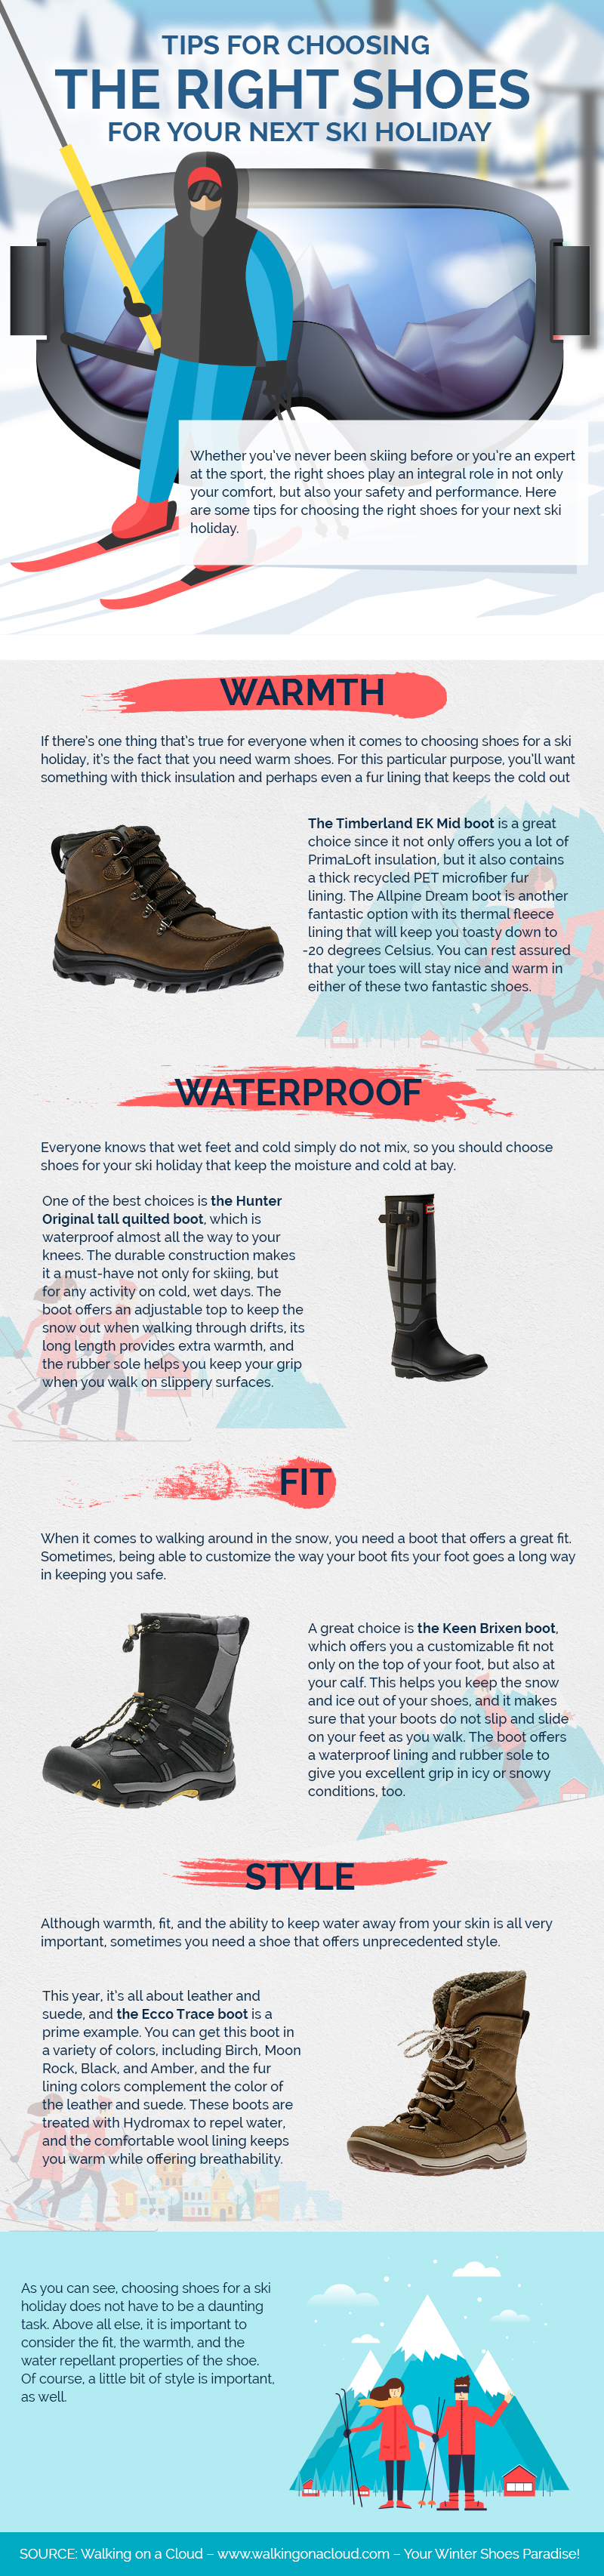 Tips-for-Choosing-the-Right-Shoes-for-Your-Next-Ski-Holiday